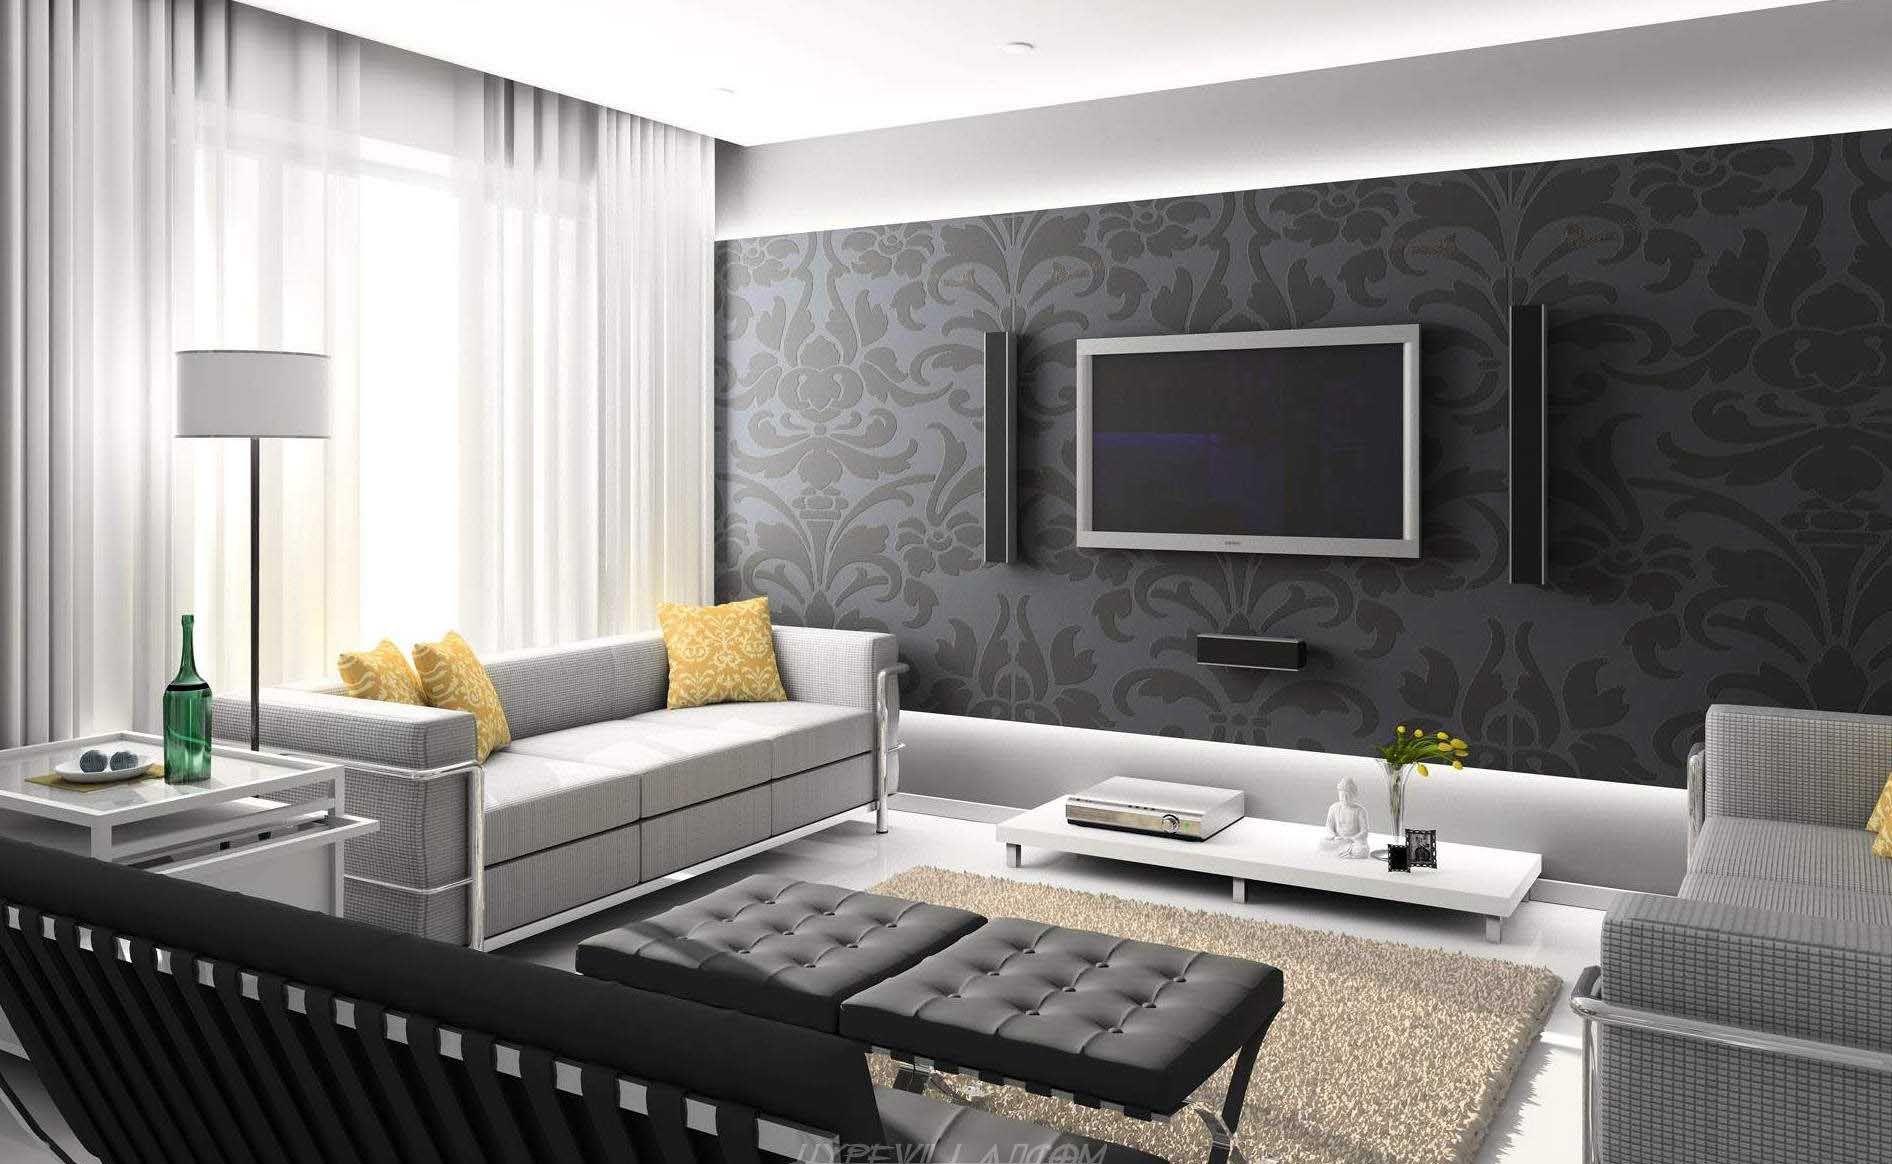 mesmerize urban living room decorating ideas elegant urban living room design with black damask wallpaper and white lampshade floor lamp also tufted seat